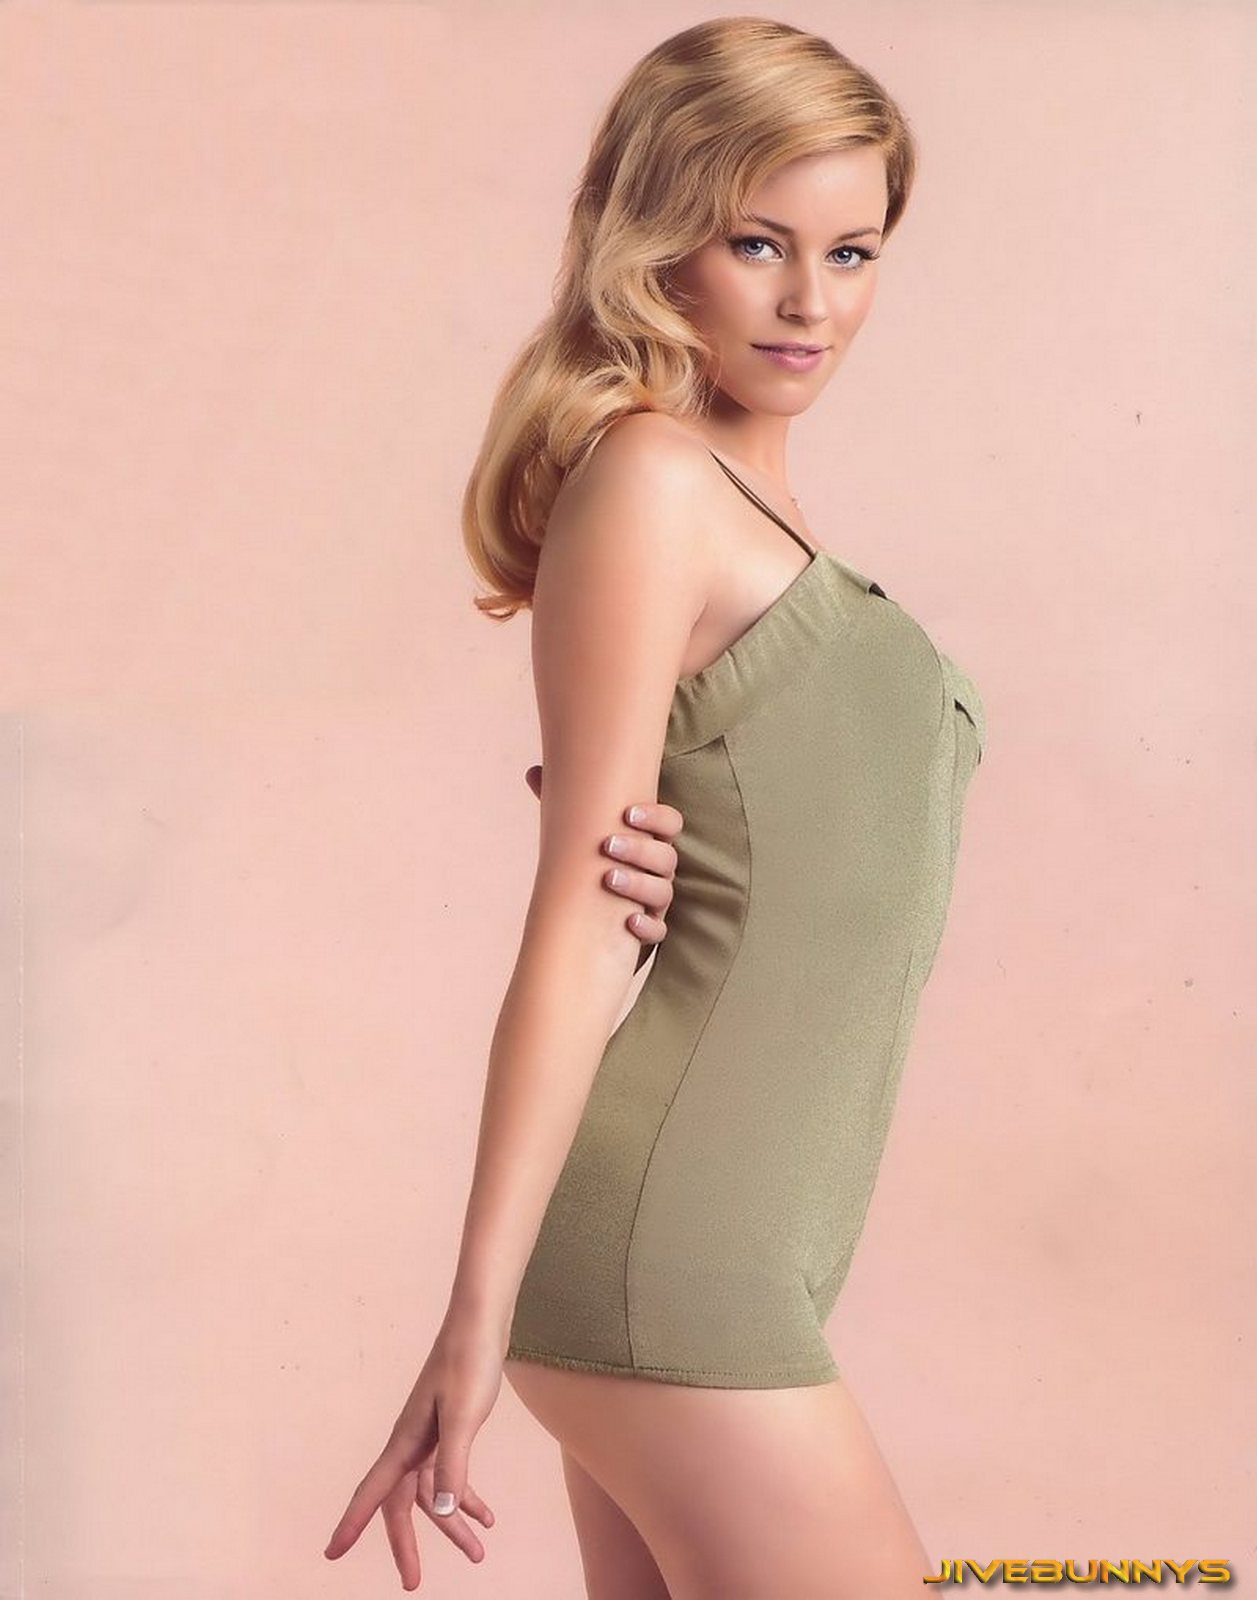 elizabeth banks movies - photo #24